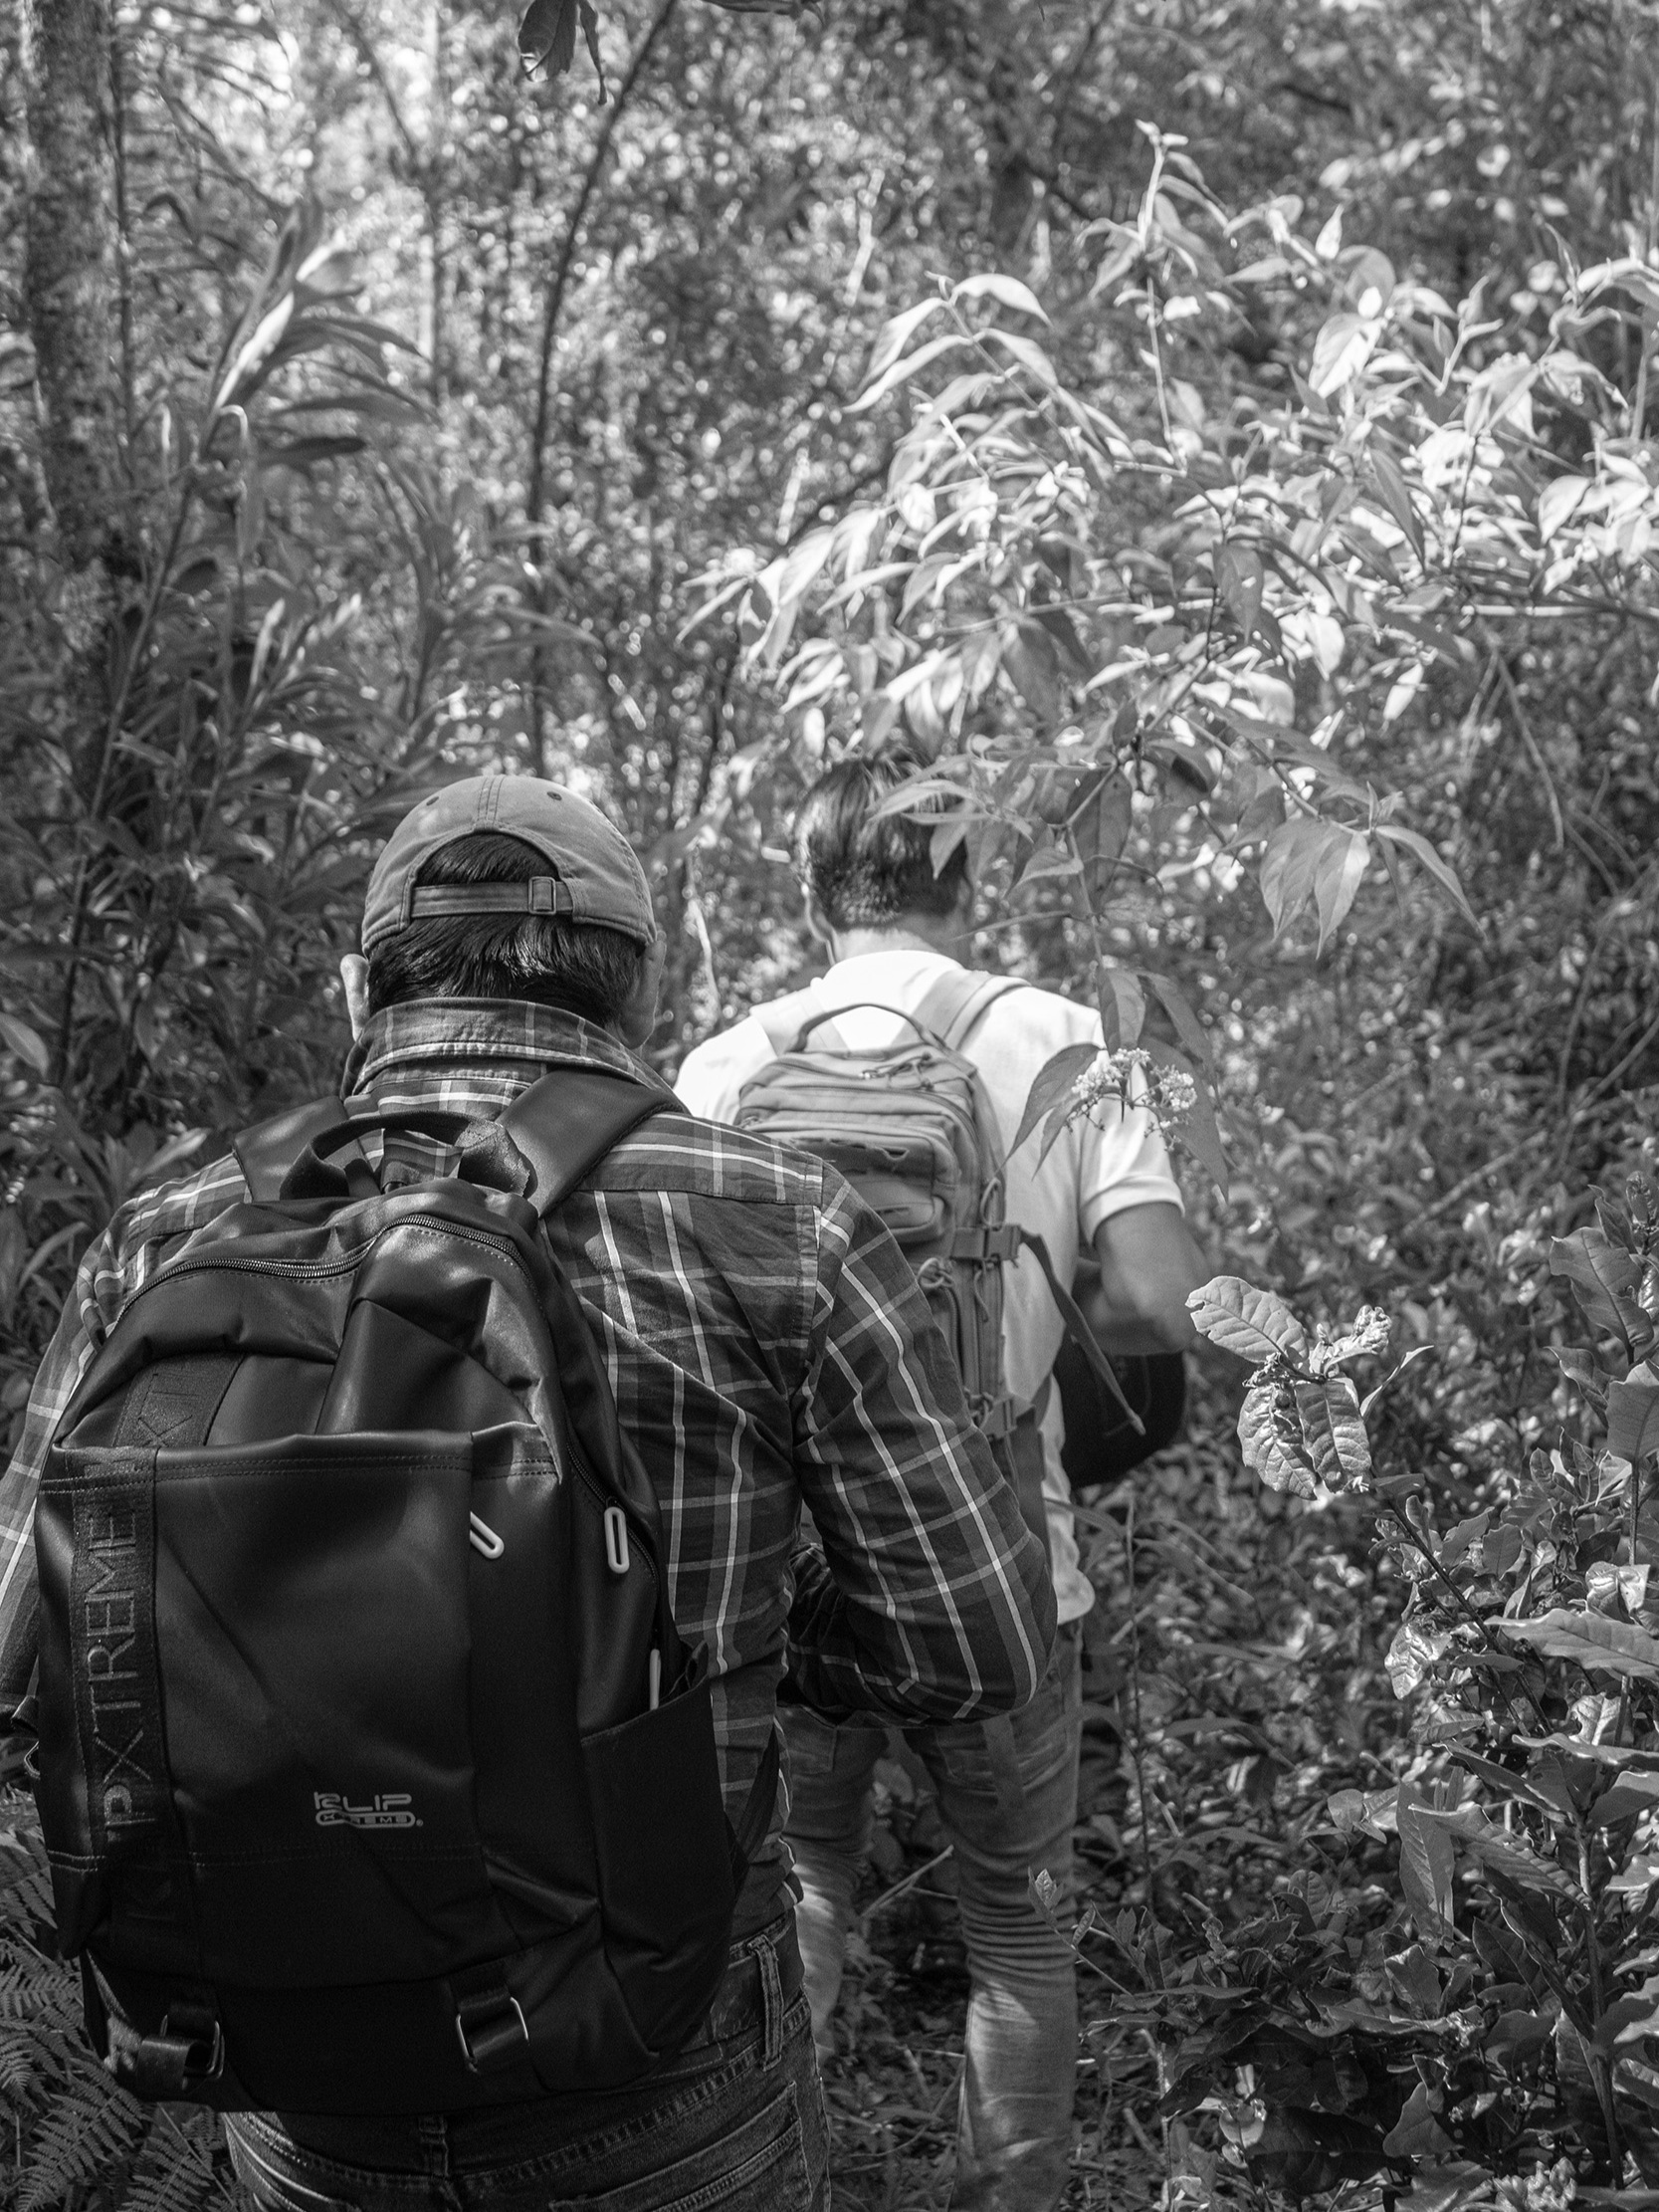 Trekking through thick brush to get to the hives.